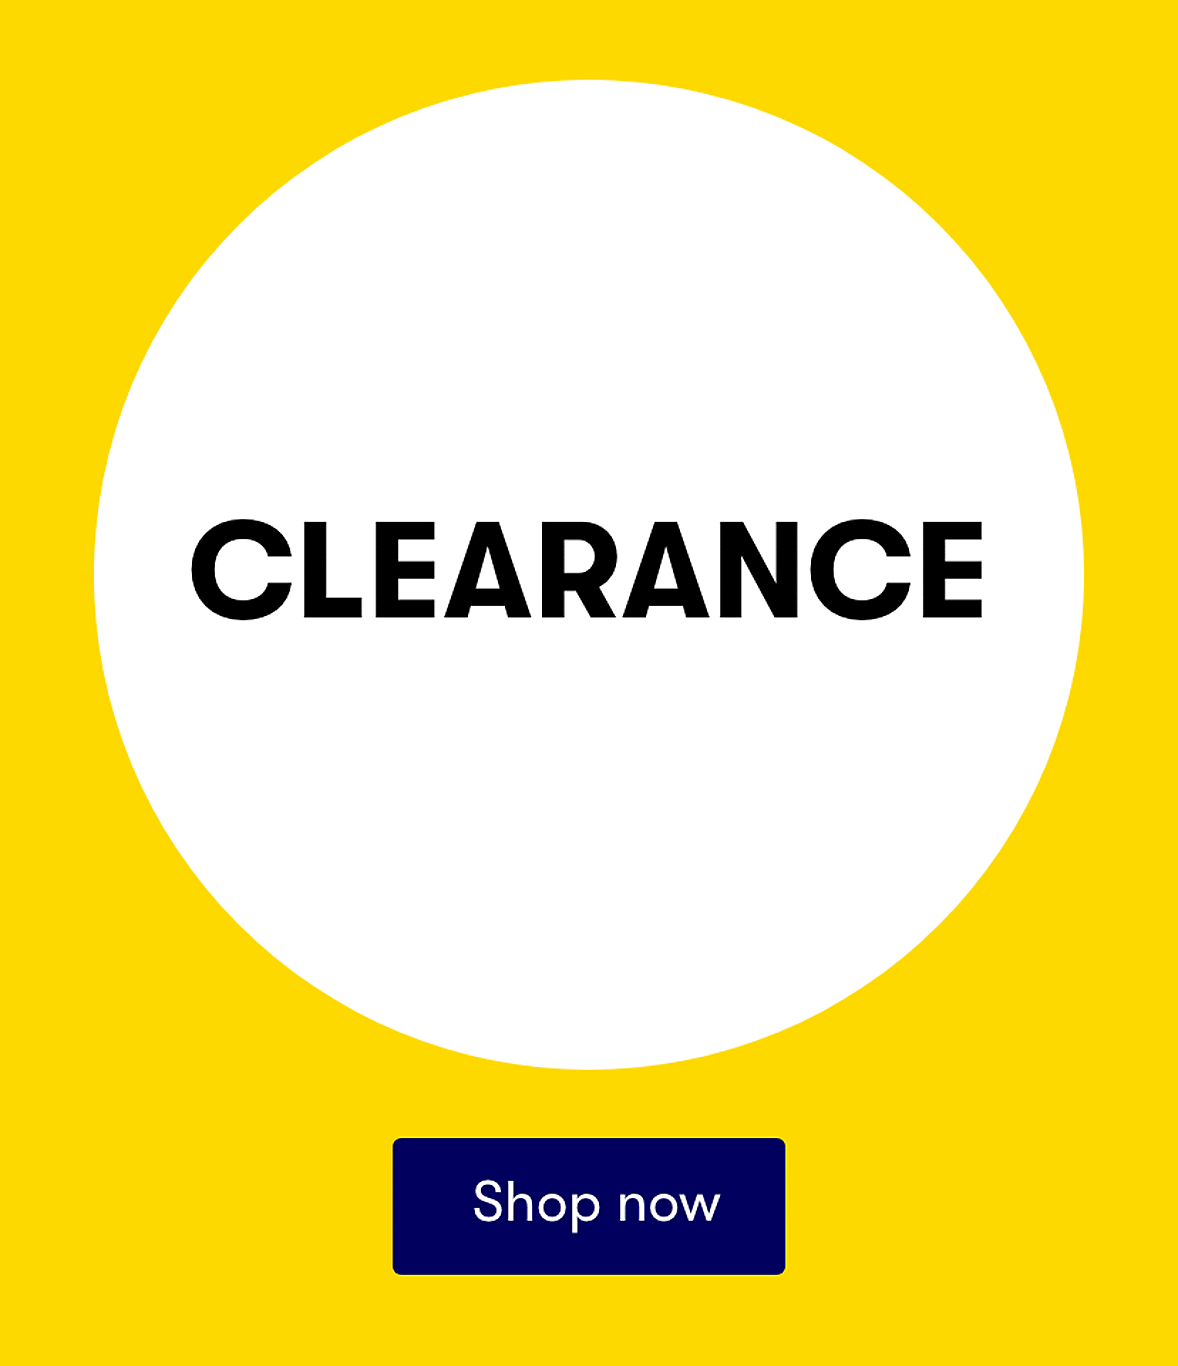 Clearance shop all